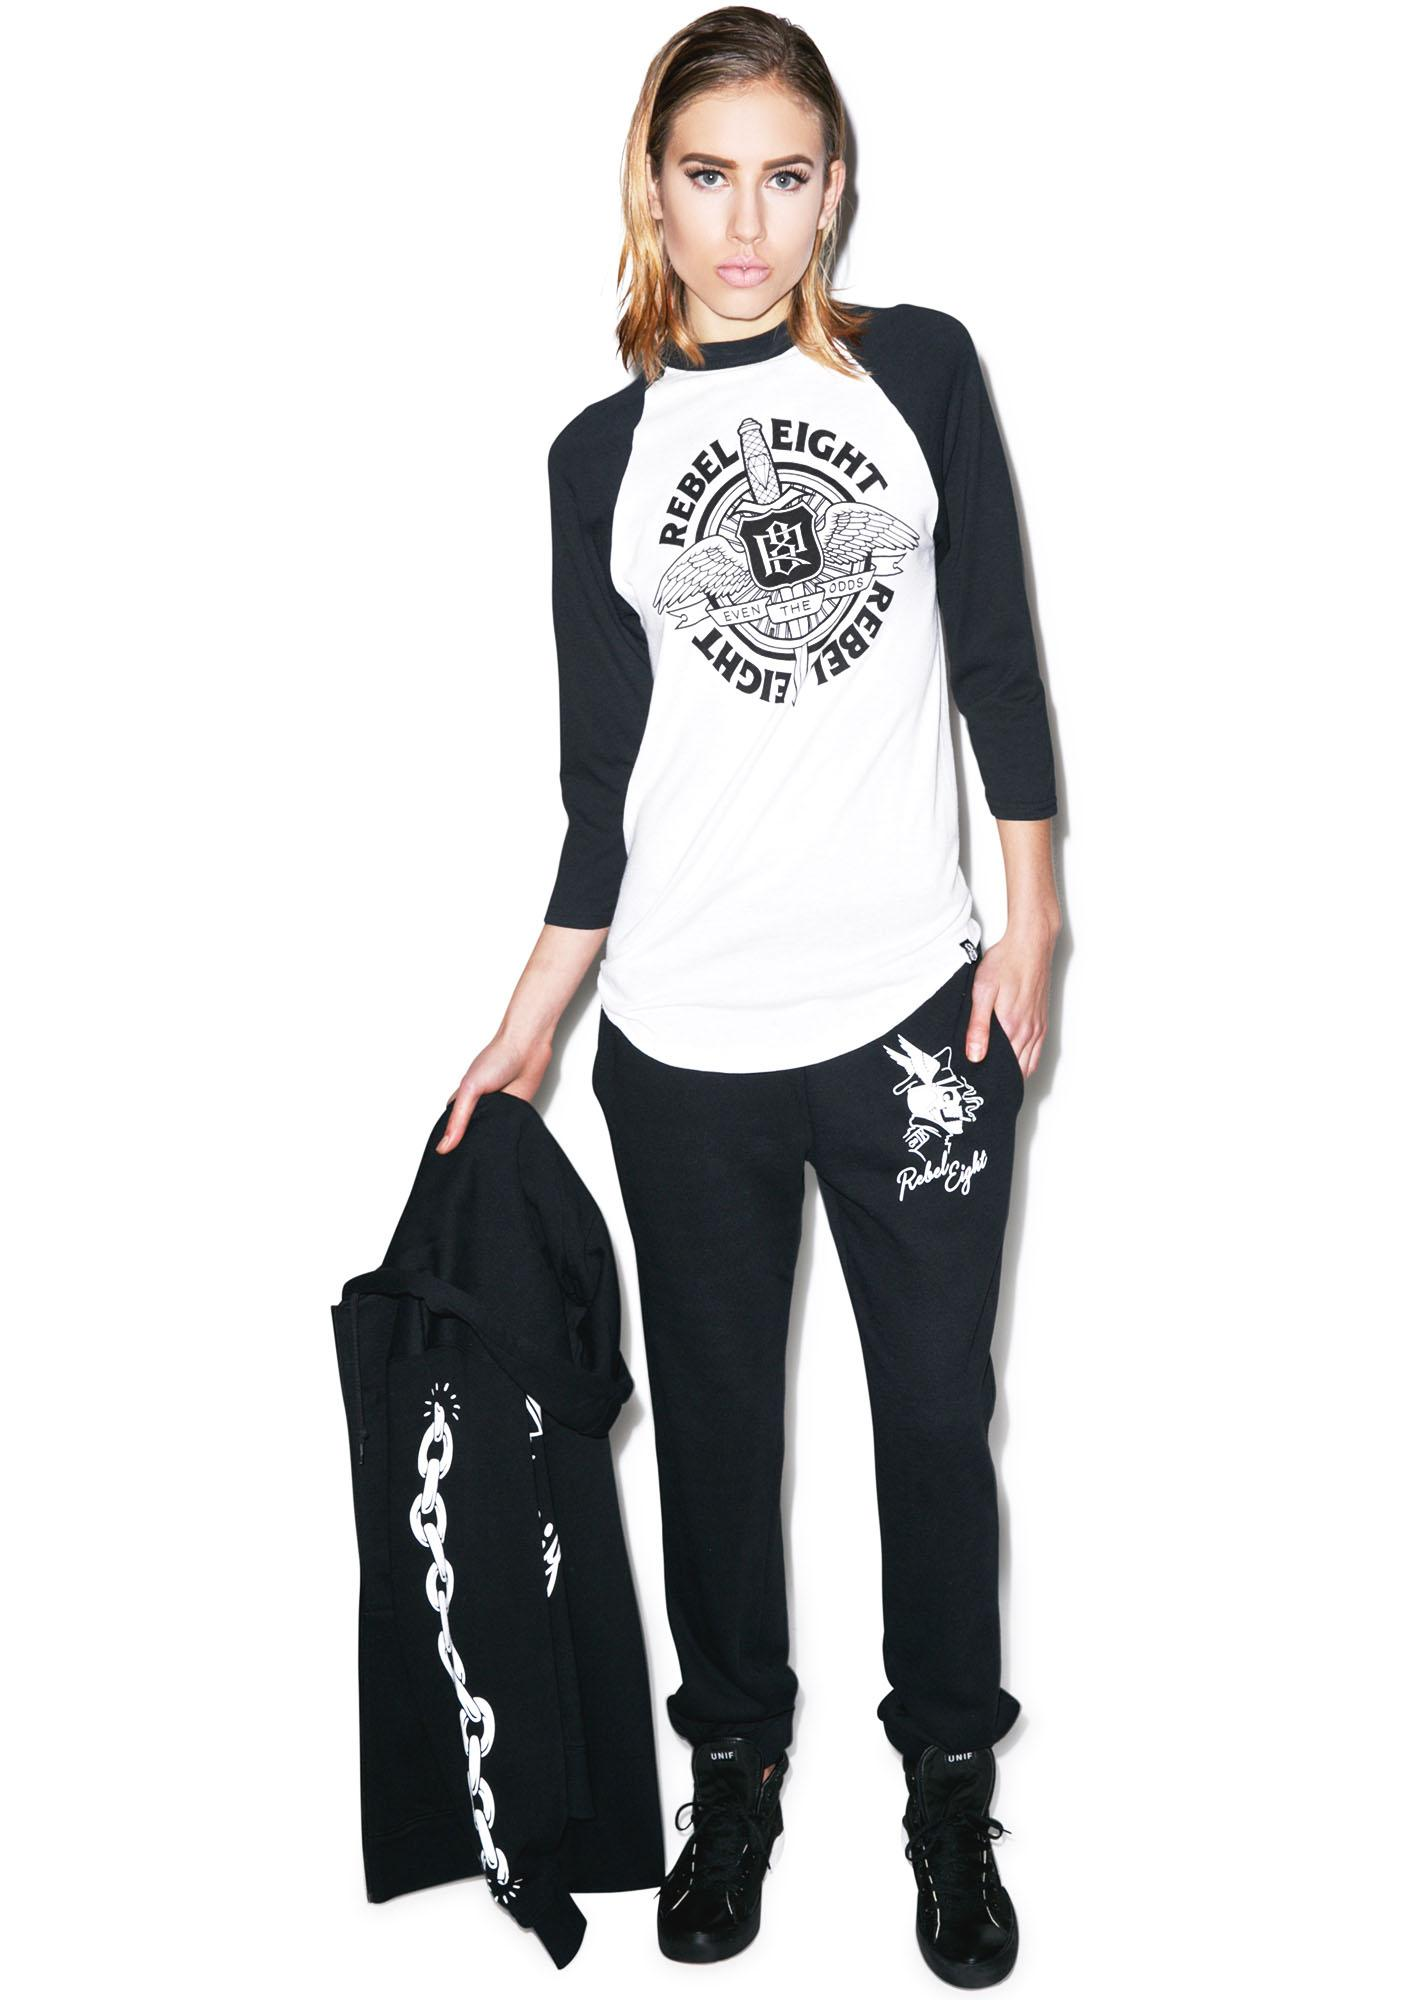 Rebel8 Ride Hard Sweatpants